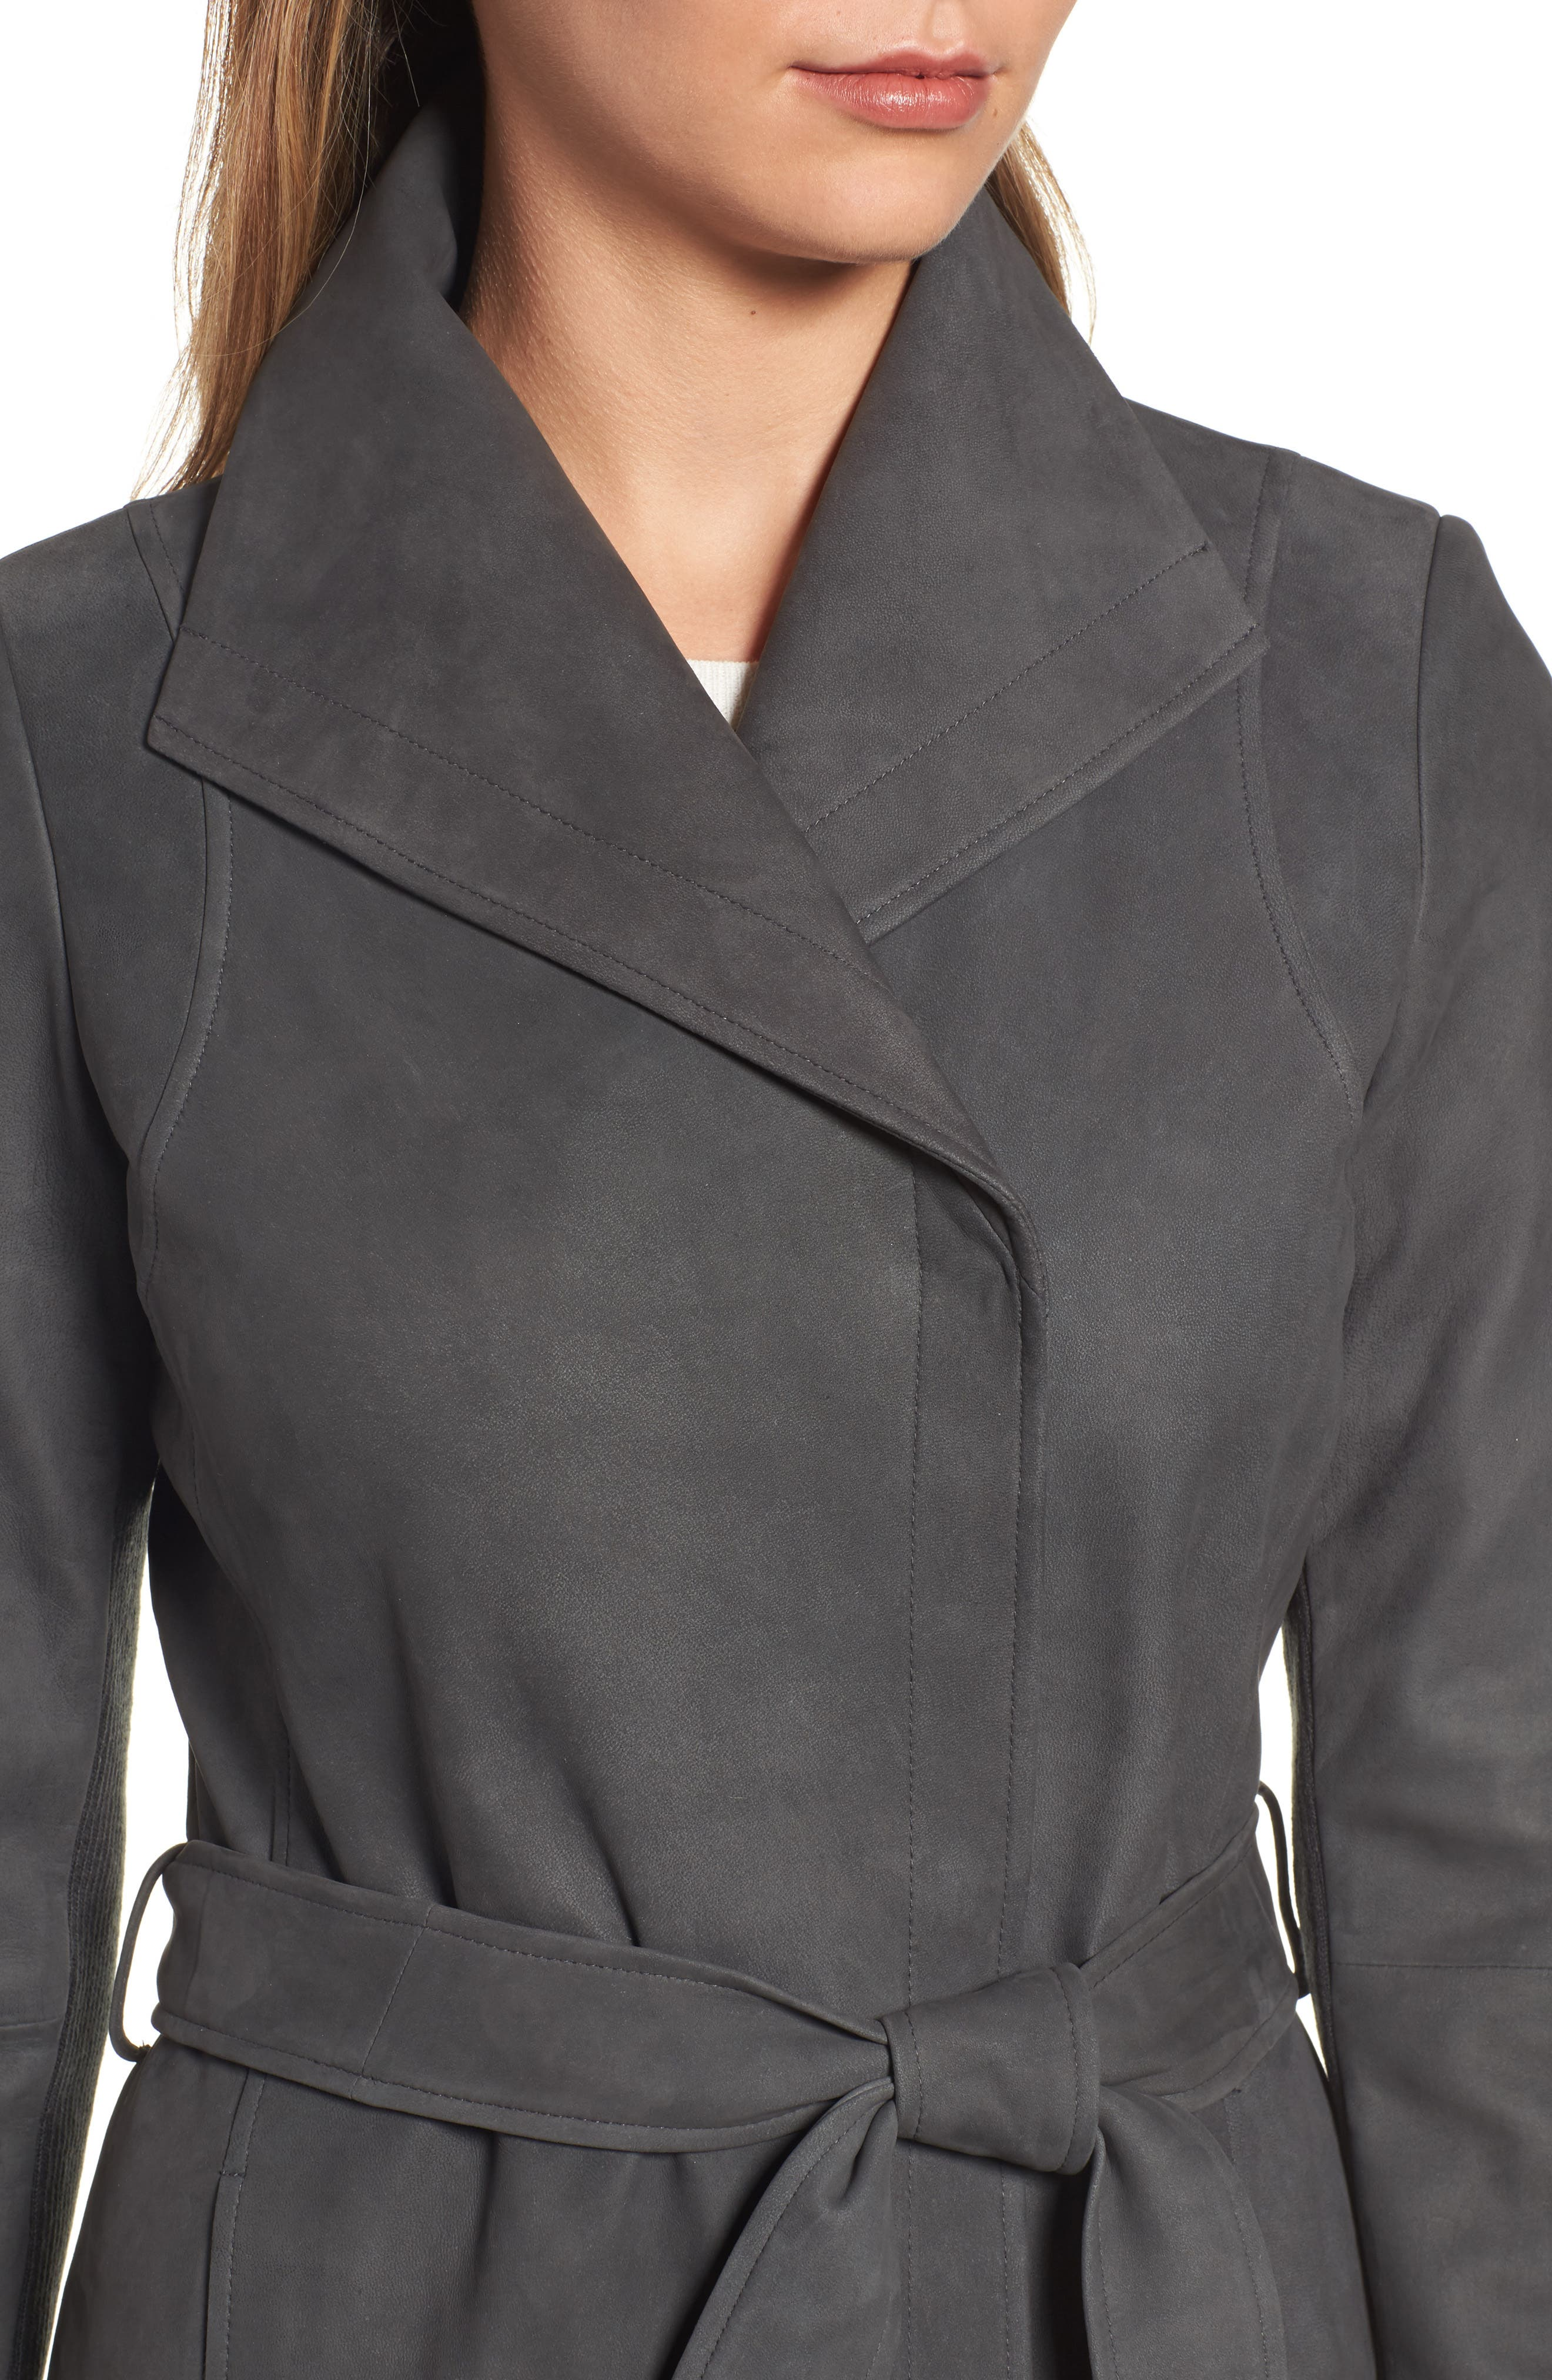 Jacqueline Belted Leather Trench Coat,                             Alternate thumbnail 4, color,                             065